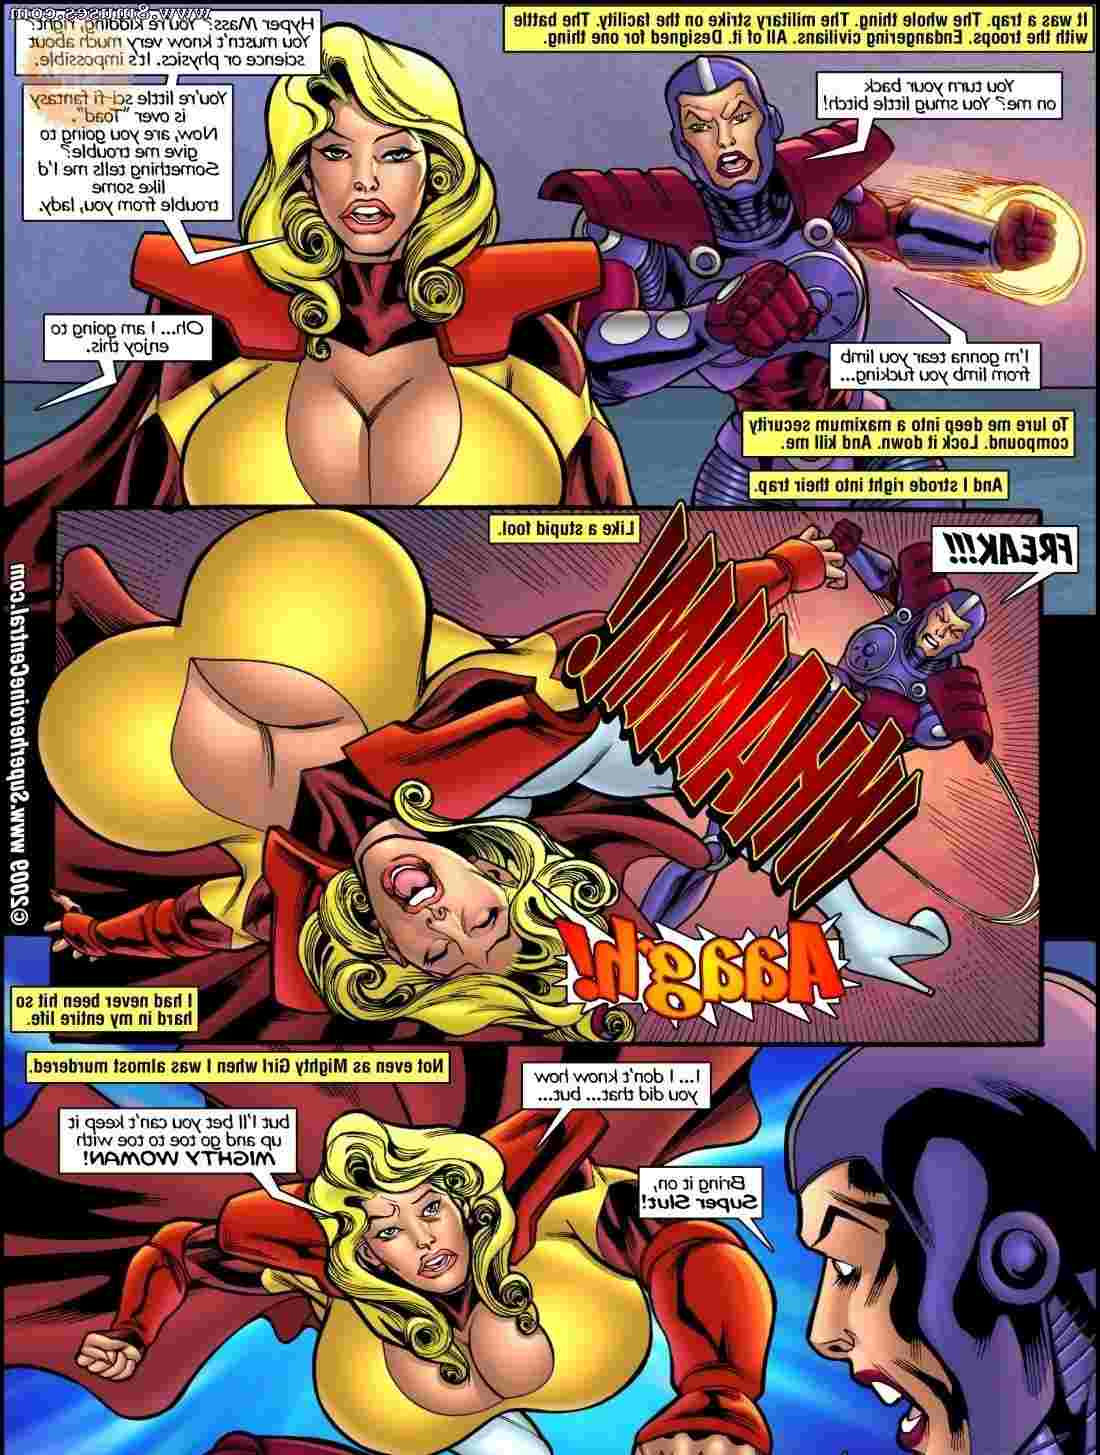 SuperHeroineComixxx/Mighty-cow Mighty_cow__8muses_-_Sex_and_Porn_Comics_22.jpg